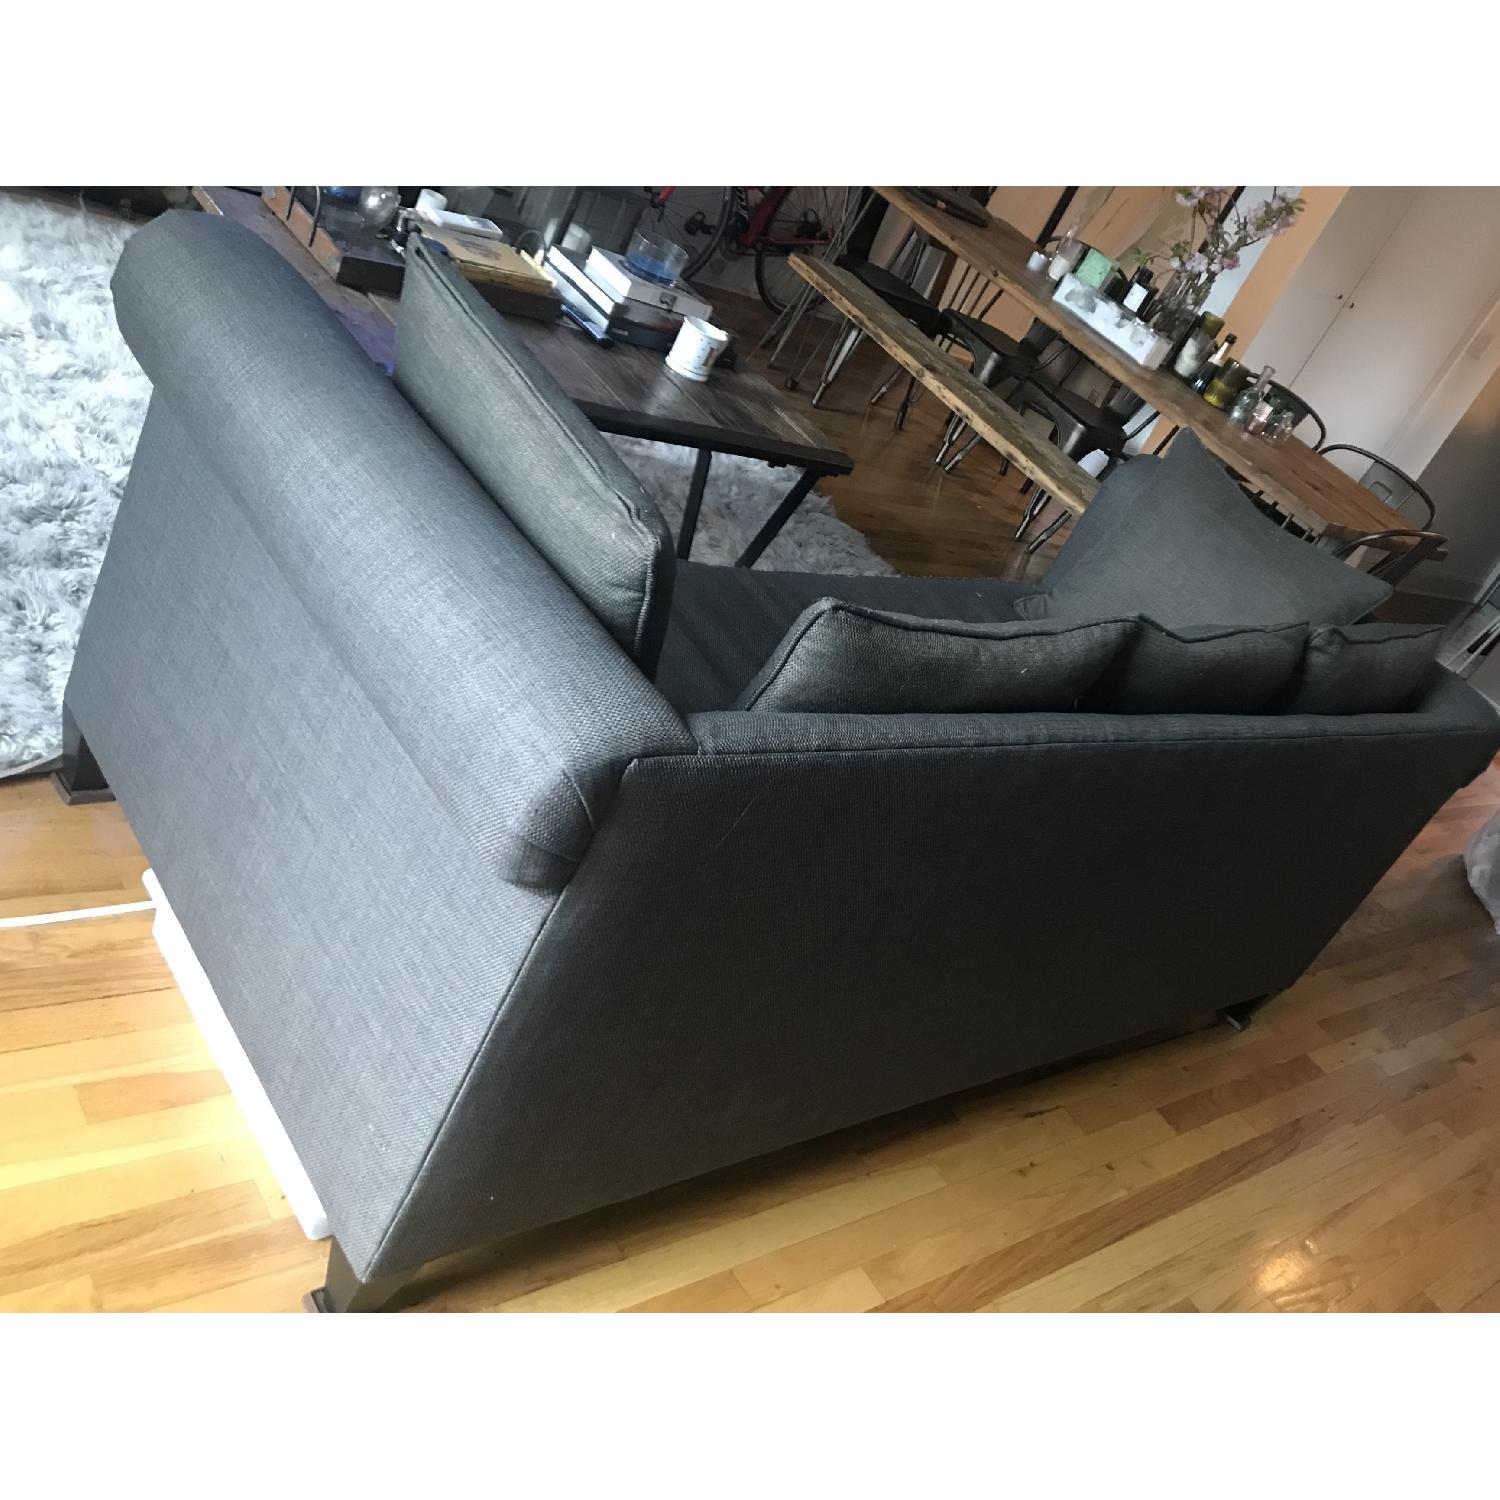 Crate & Barrel 3 Seater Down Filled Sofa - image-7